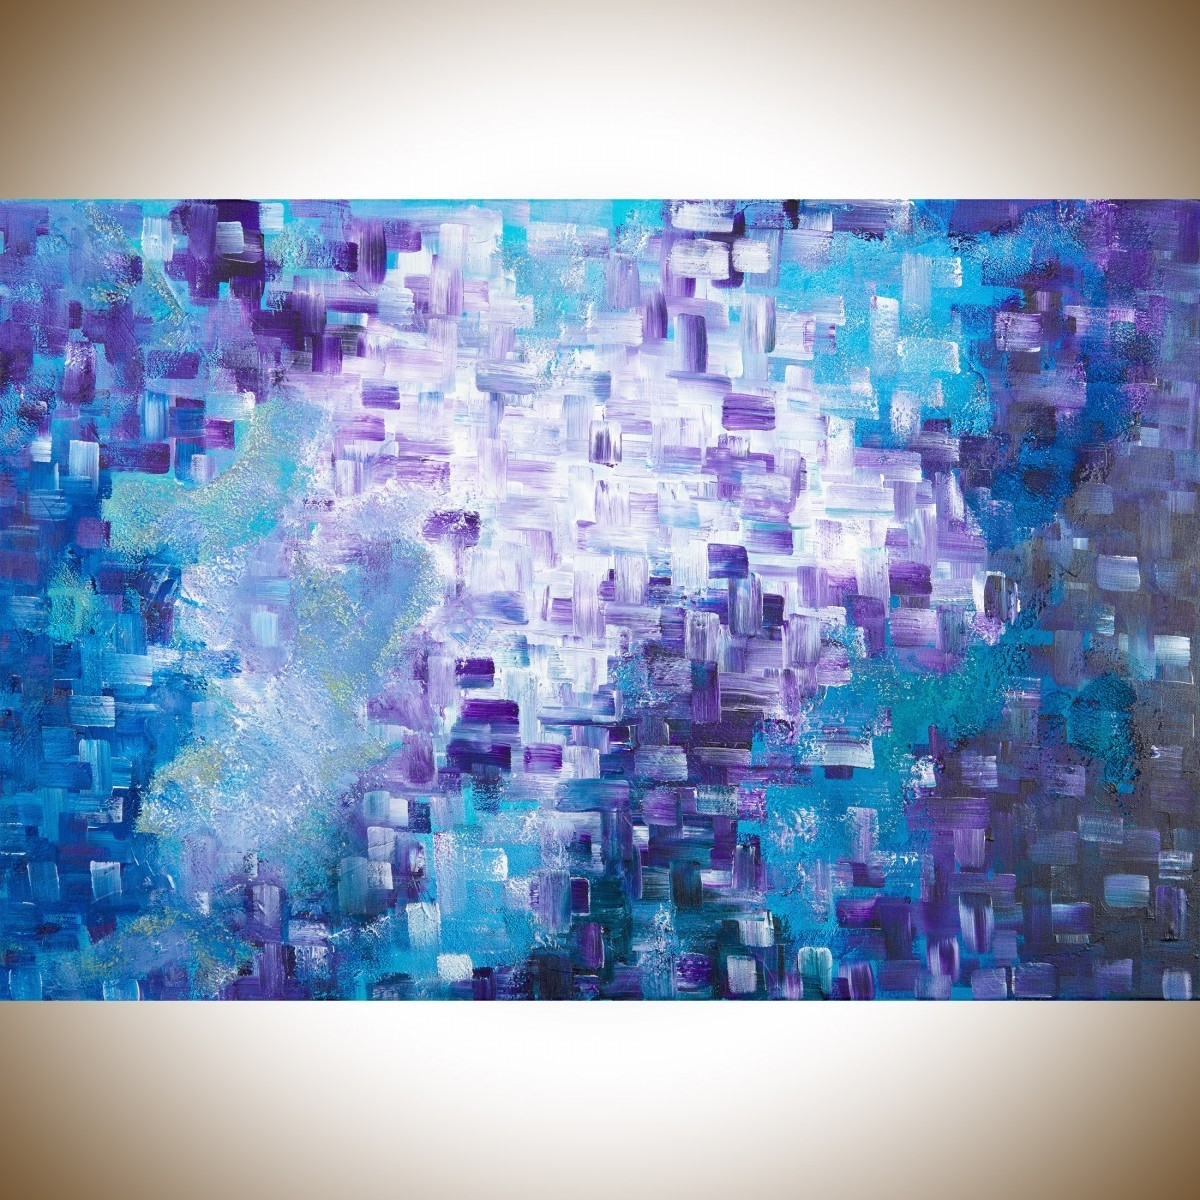 "Dissolvingqiqigallery 36""x24"" Stretched Canvas Original Large Intended For Trendy Modern Abstract Painting Wall Art (View 2 of 15)"